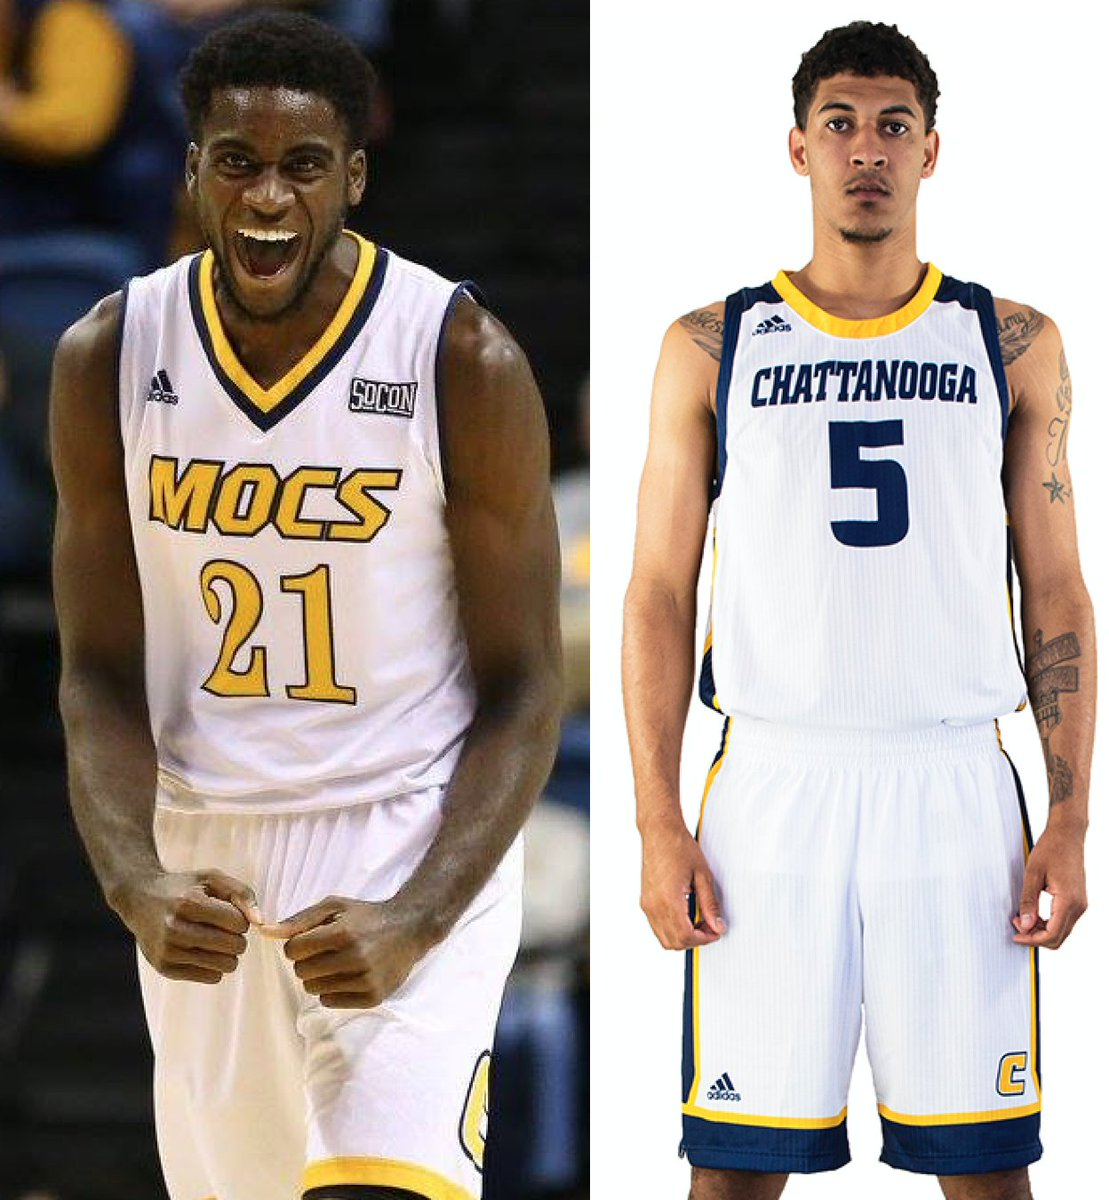 ffc6bd1f8 New home and road unis for Chattanooga. … Adding to the list of teams with  new uniforms